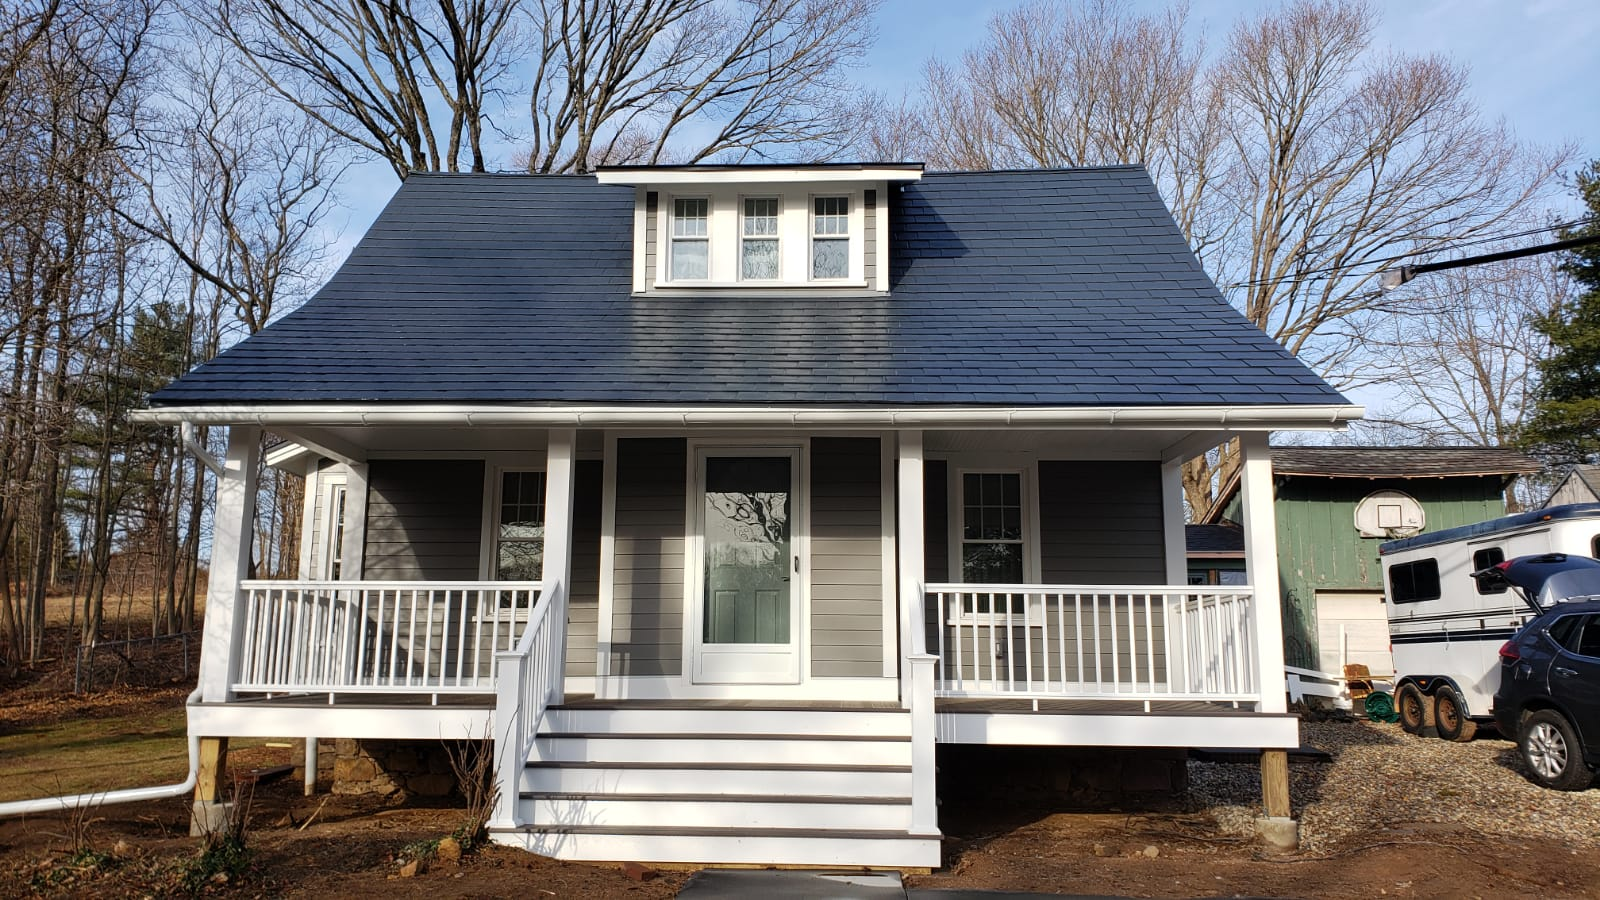 After James Hardie Installation & Front Porch Remodel in Guilford, CT